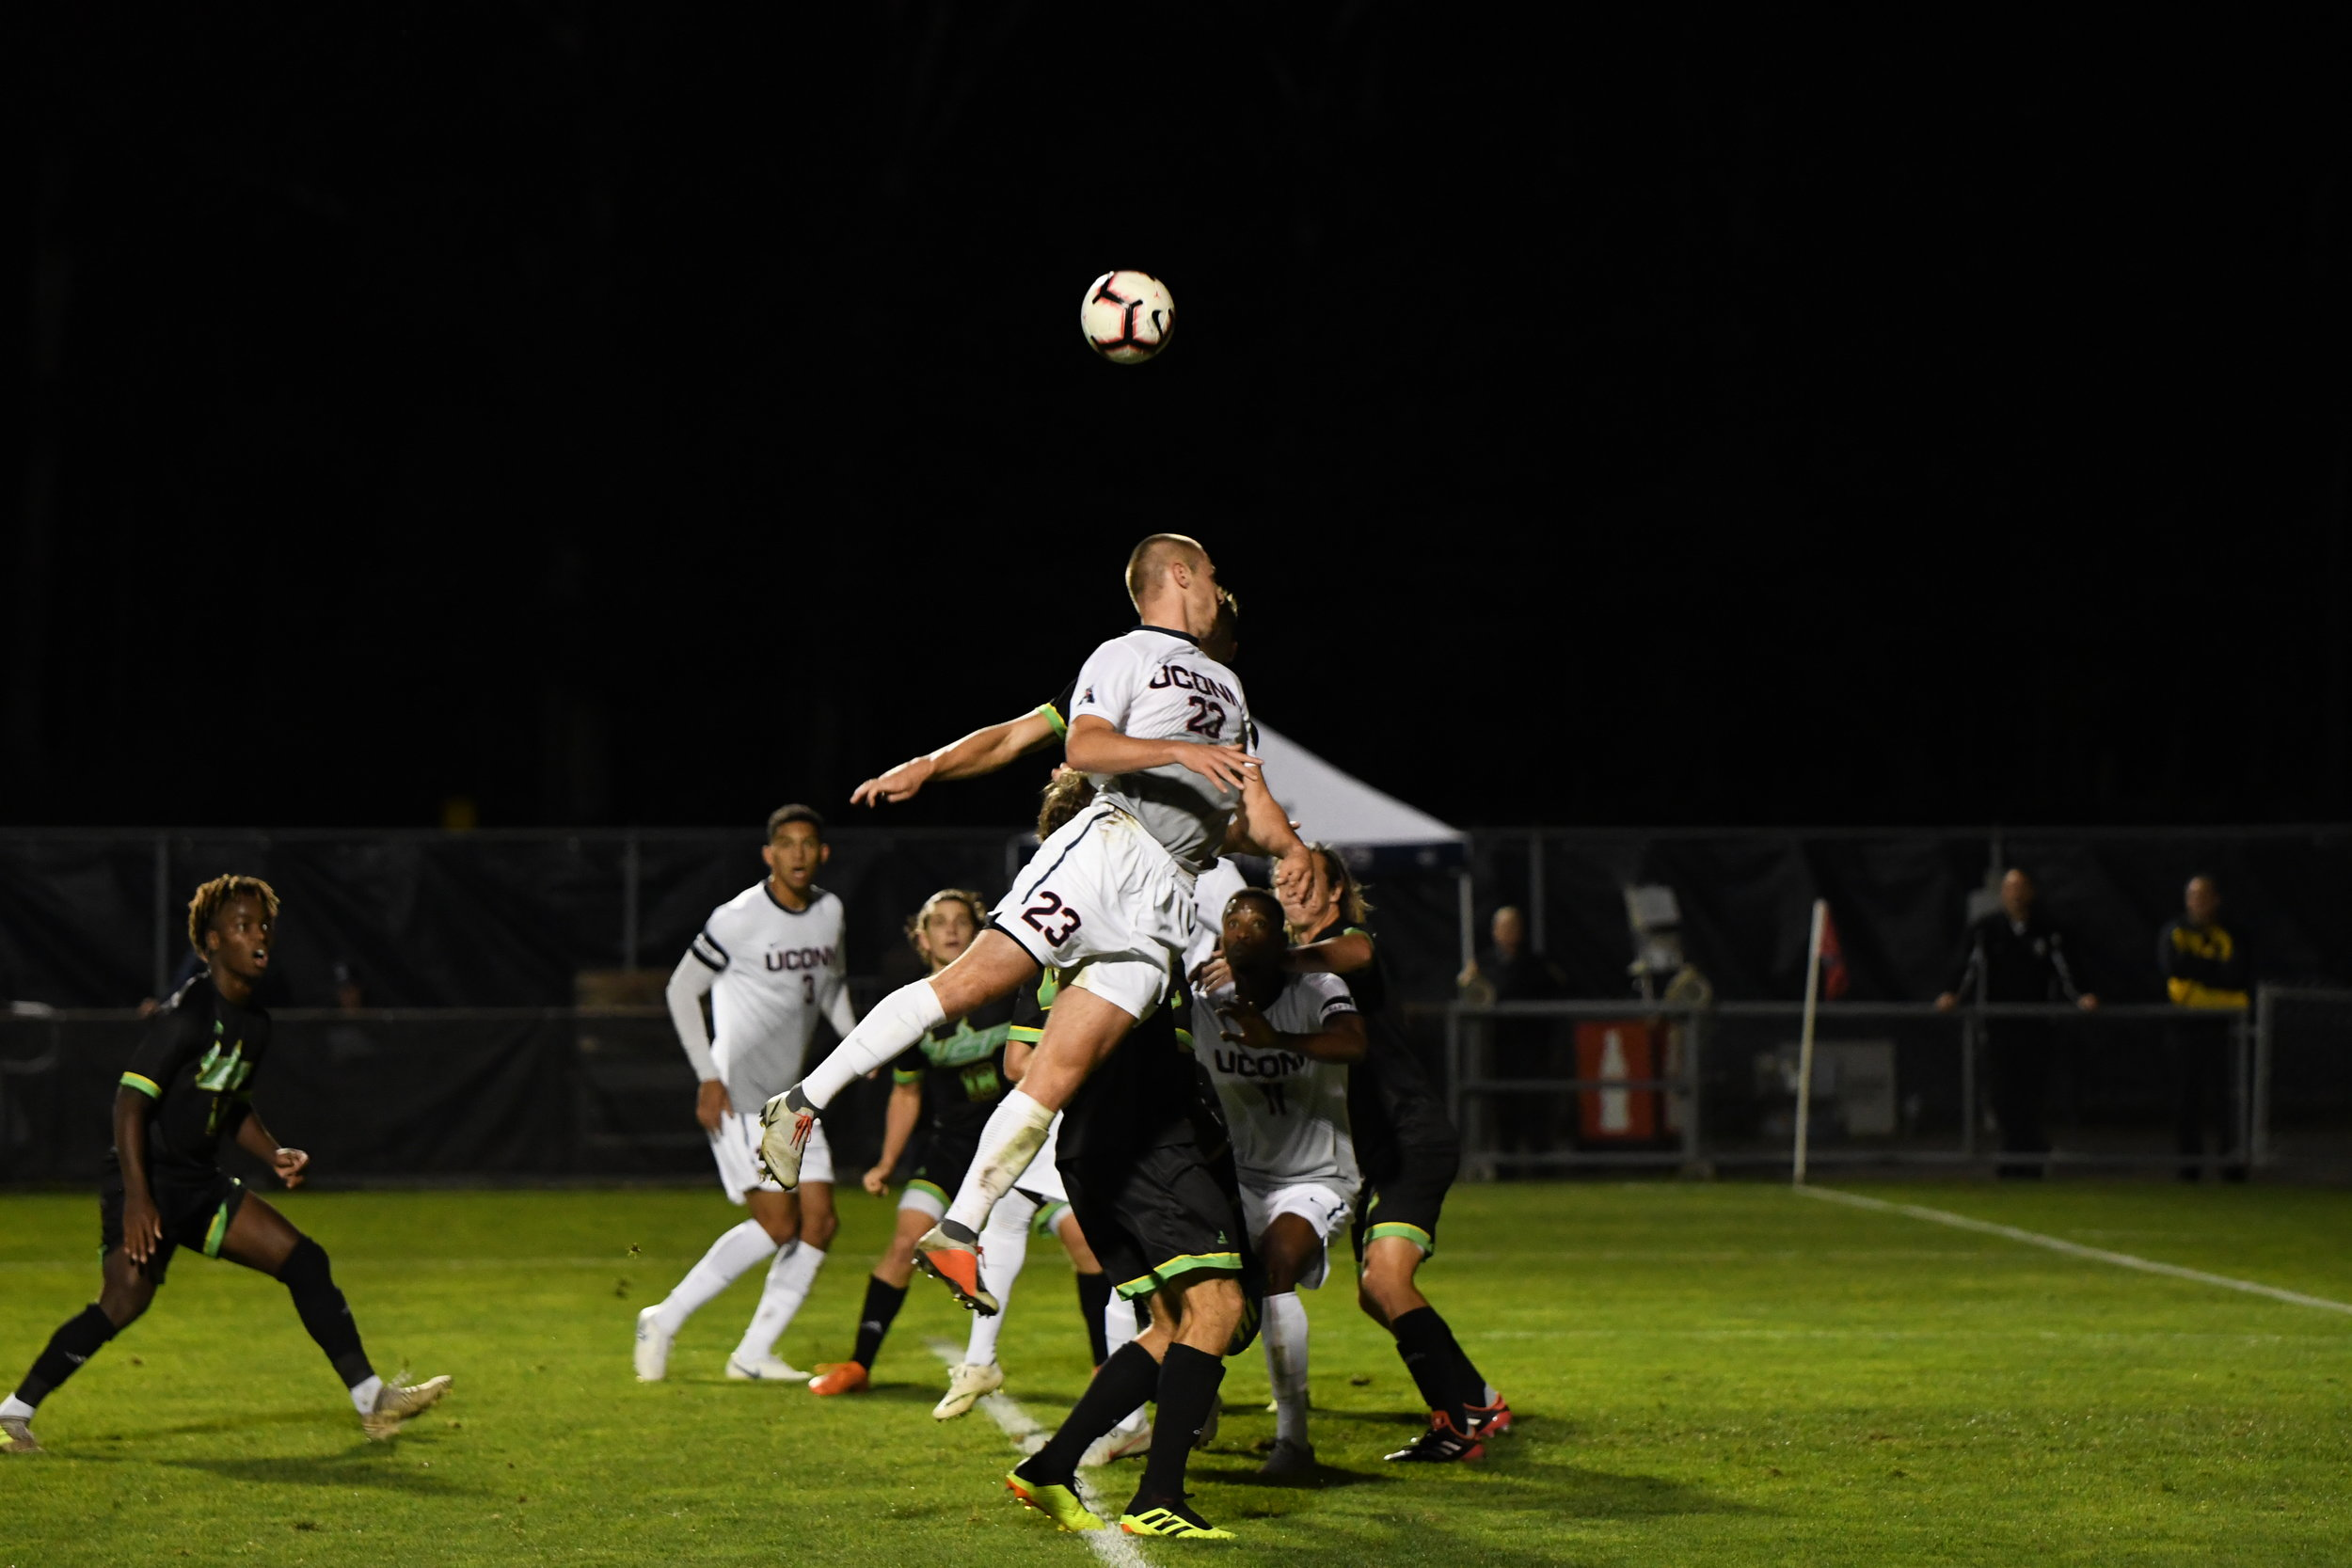 UConn Men's Soccer ties 2-2 in double overtime against USF on Sept. 23 at Morrone Stadium. Dayonn Harris and Abdou Mbacke Thiam scored the two goals for UConn. Photo by Nicholas Hampton, Associate Photo Editor/The Daily Campus